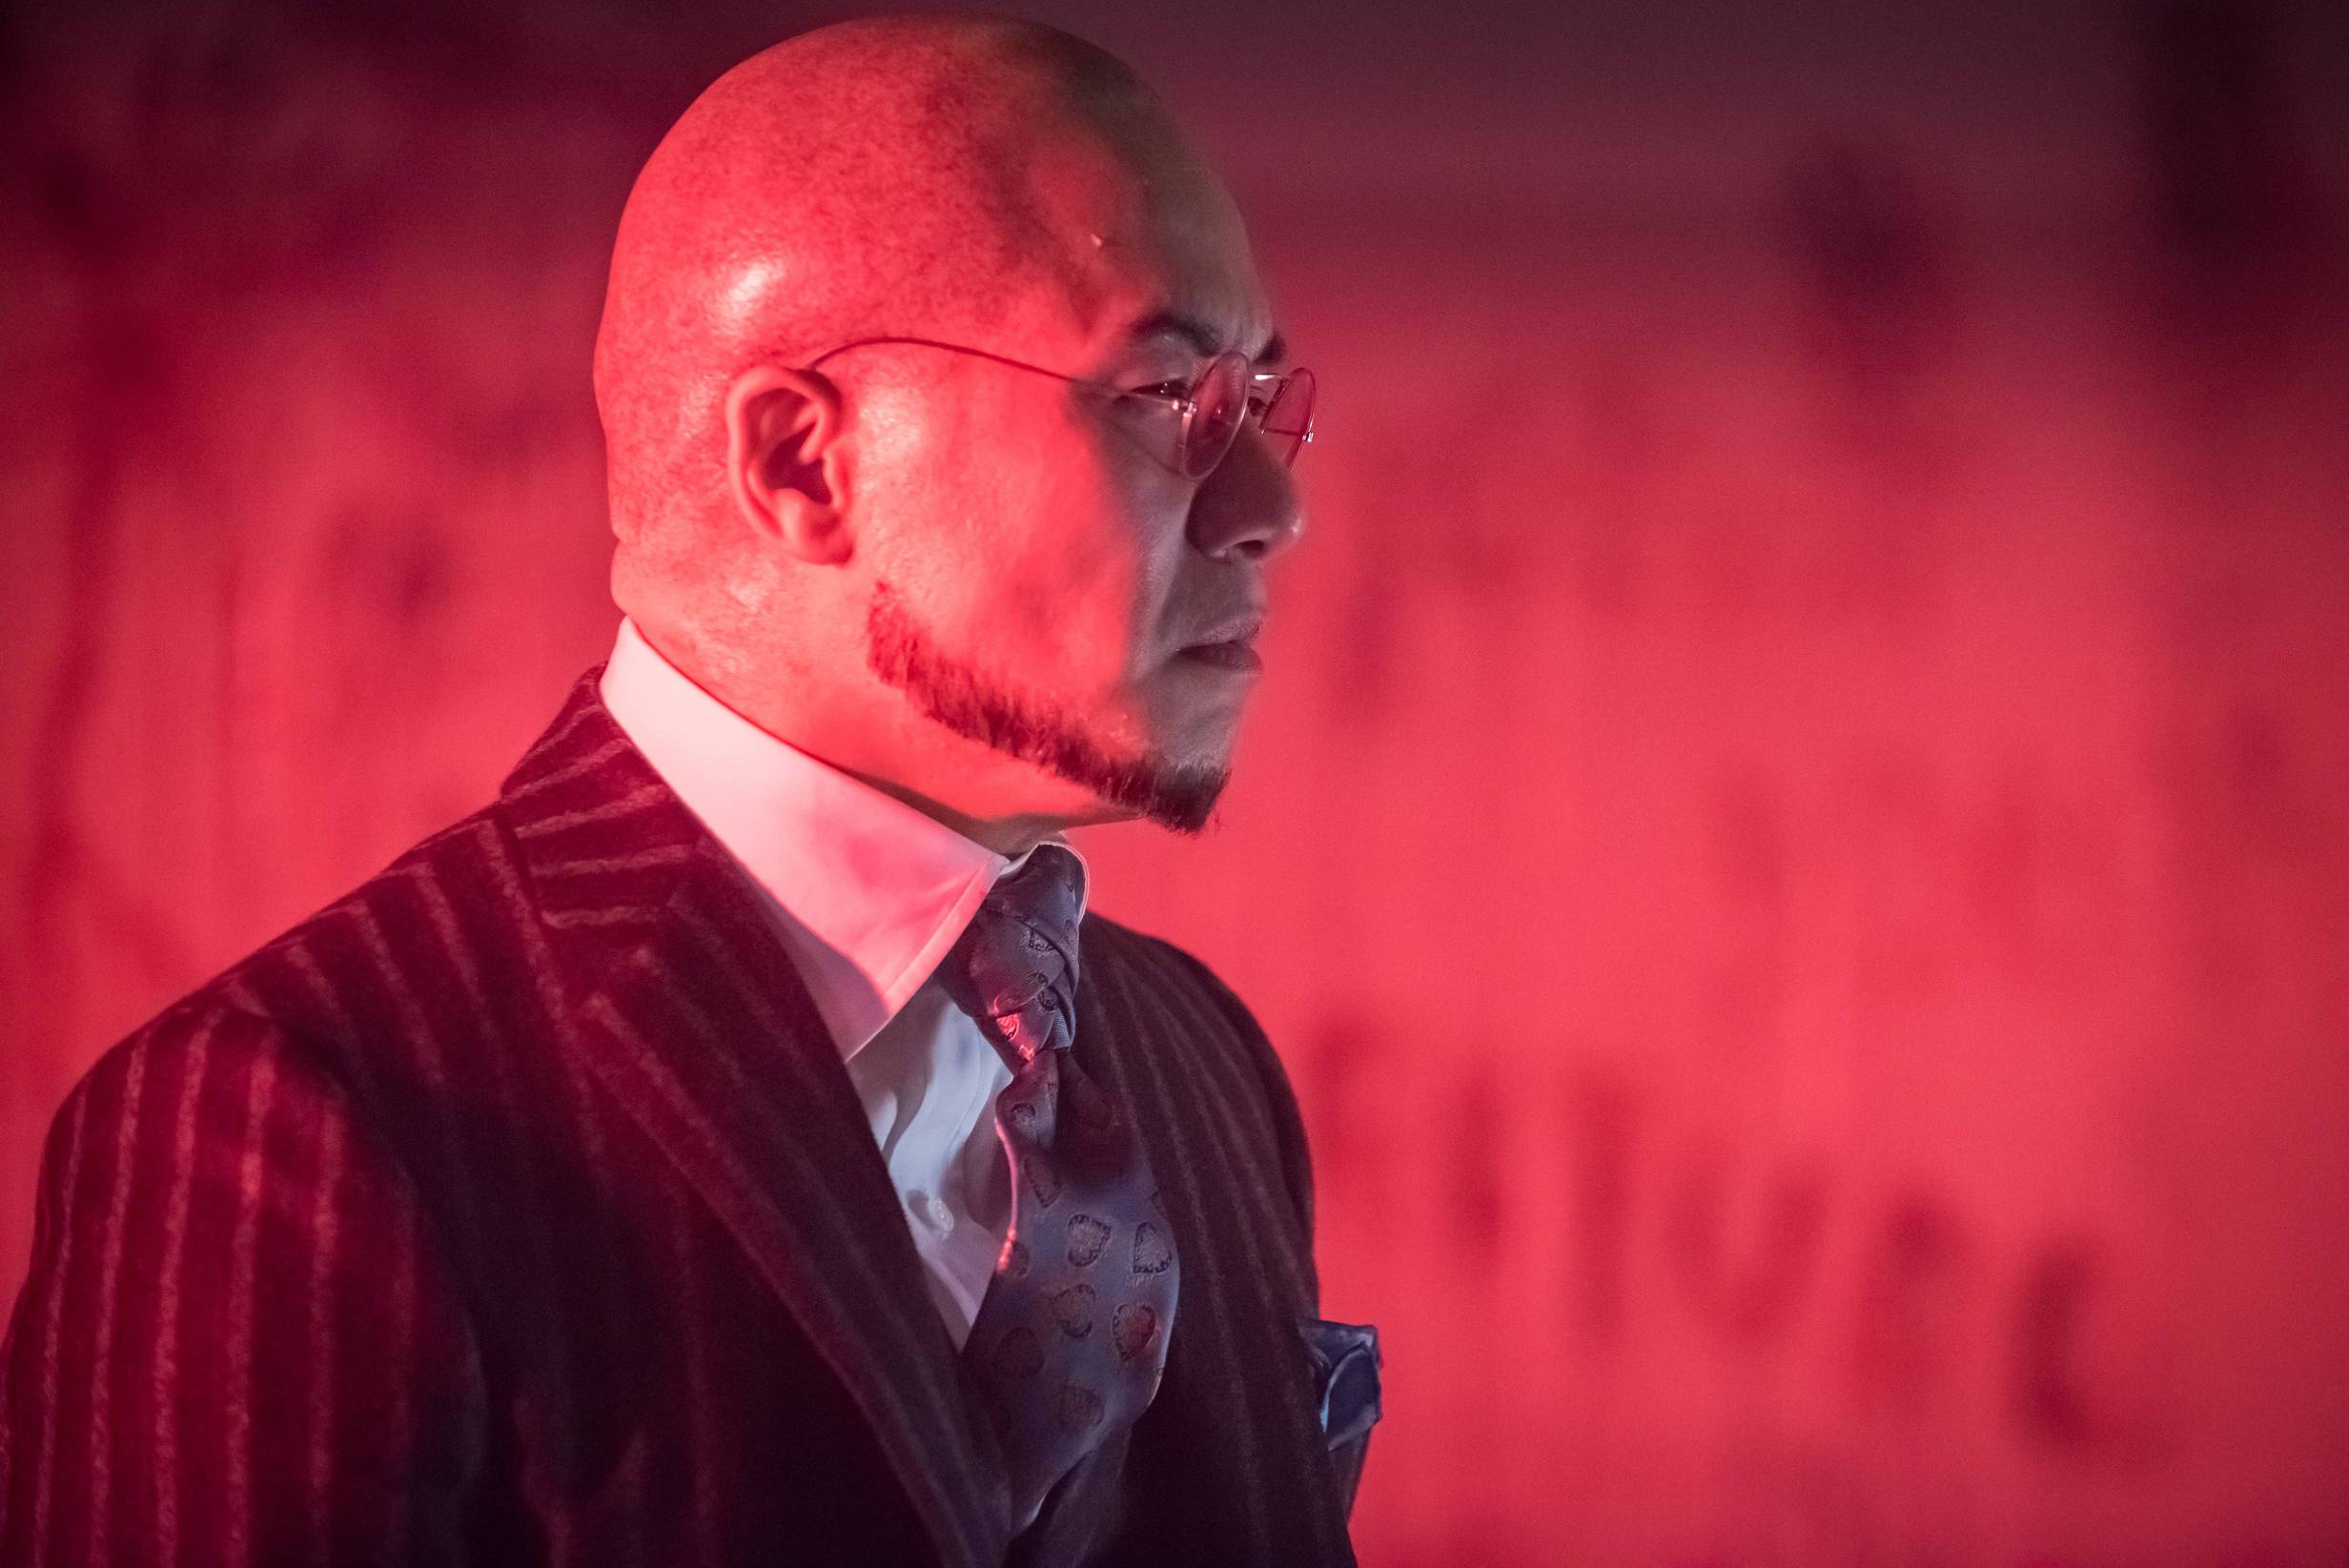 """GOTHAM:  BD Wong in the """"Wrath of the Villains: Azrael"""" episode of GOTHAM airing Monday, April, 25 (8:00-9:01 PM ET/PT) on FOX. ©2016 Fox Broadcasting Co. Cr: Jeff Neumann/FOX"""